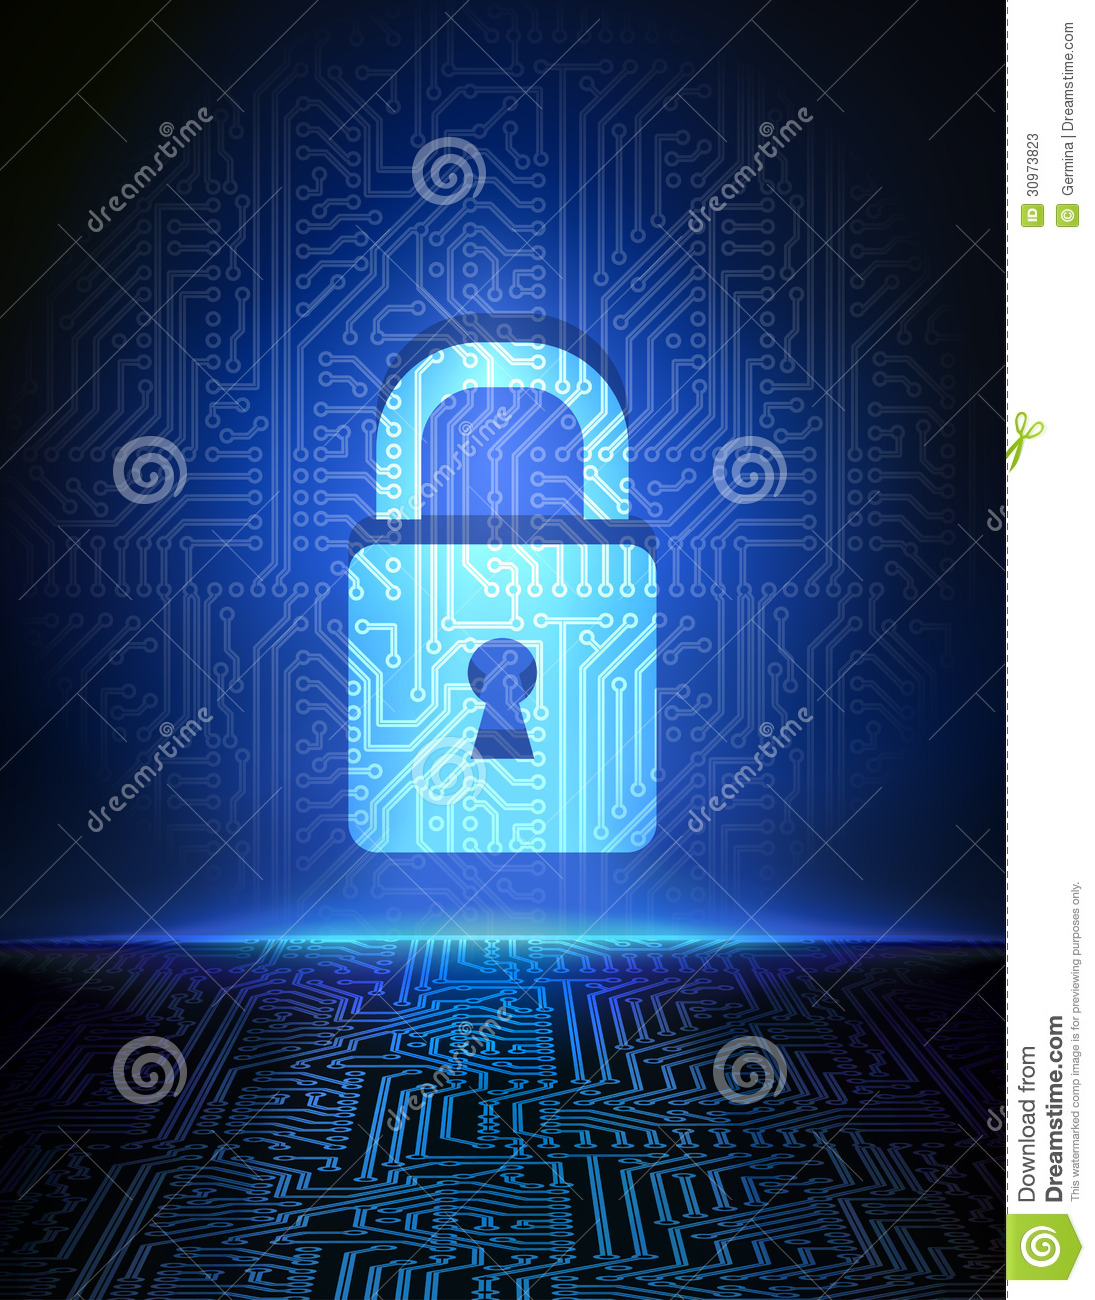 Cyber Security Concept Background Stock Photos Image